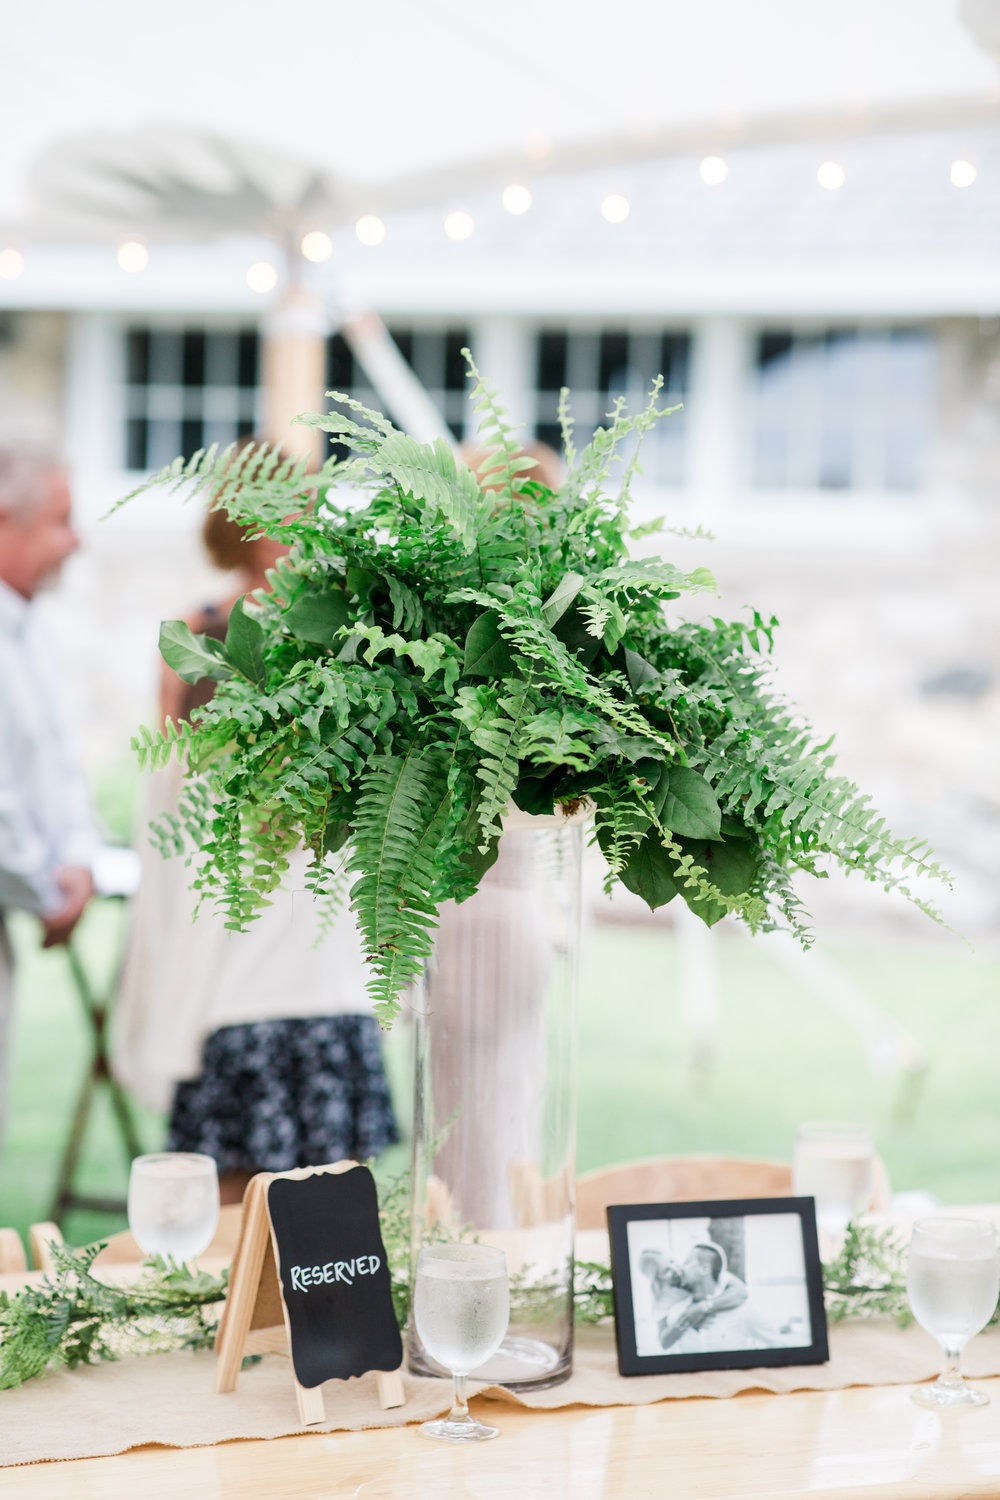 Watershed_Floral_Standish_Maine_Wedding_795.jpg